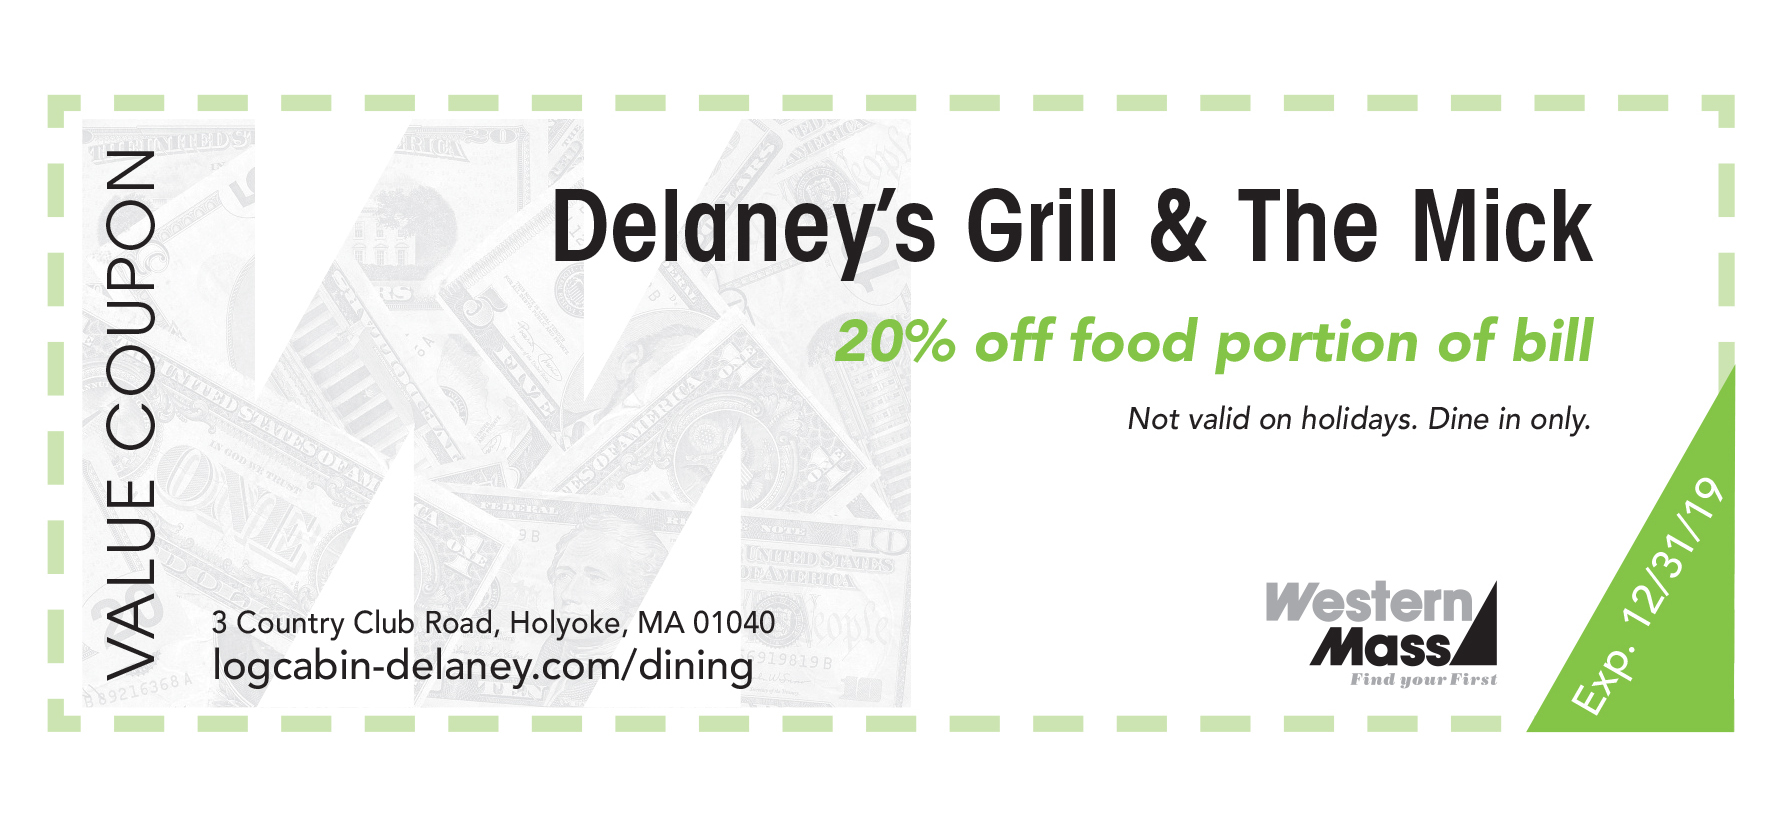 Delaney's Grill & The Mick